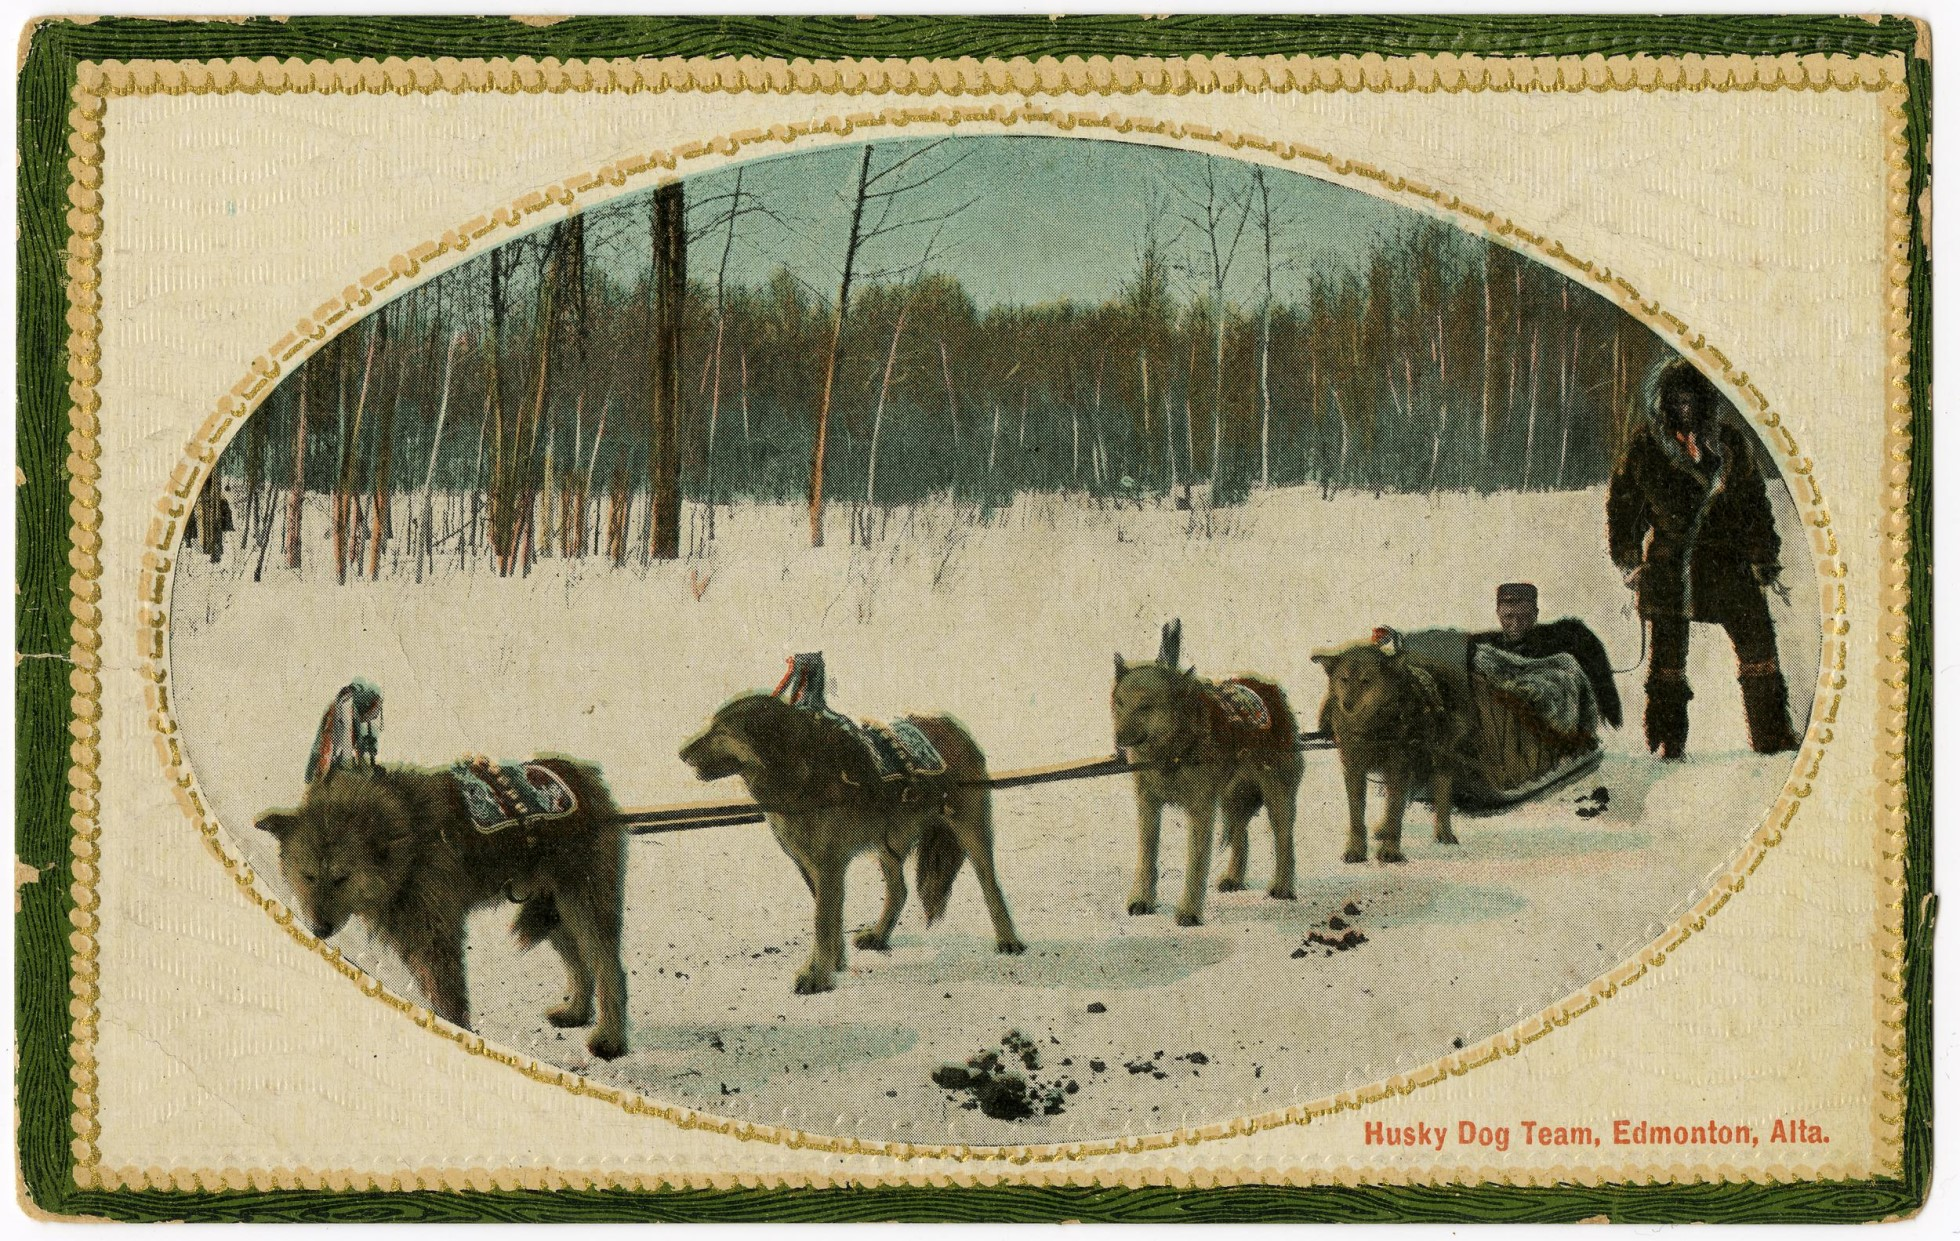 Postcard (black and white with colour), showing a man dressed in fur with a team of dogs pulling a sled in a forest.